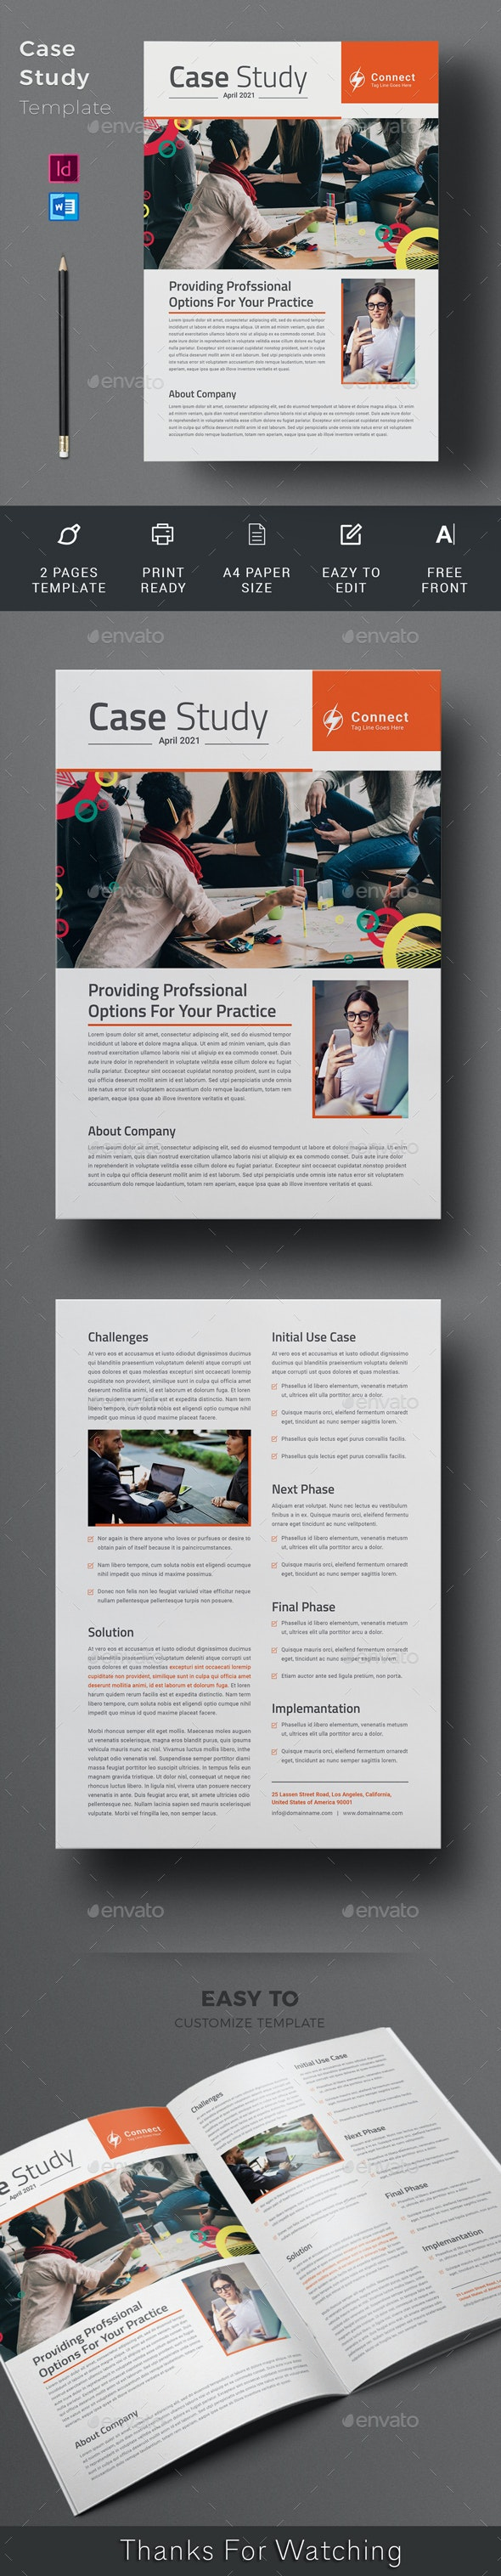 Case Study Template - Newsletters Print Templates